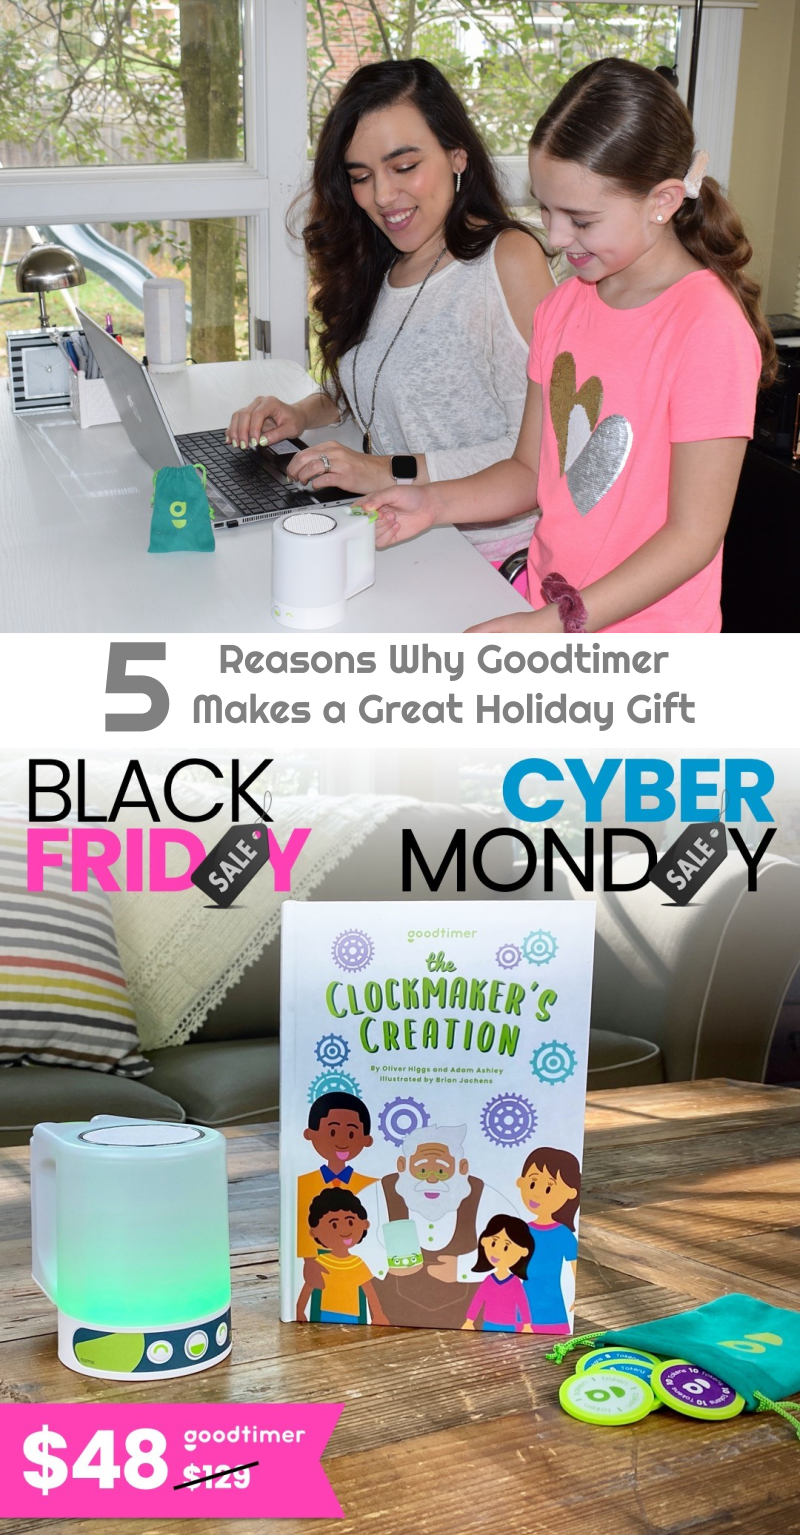 5 Reasons Why Goodtimer Makes a Great Holiday Gift